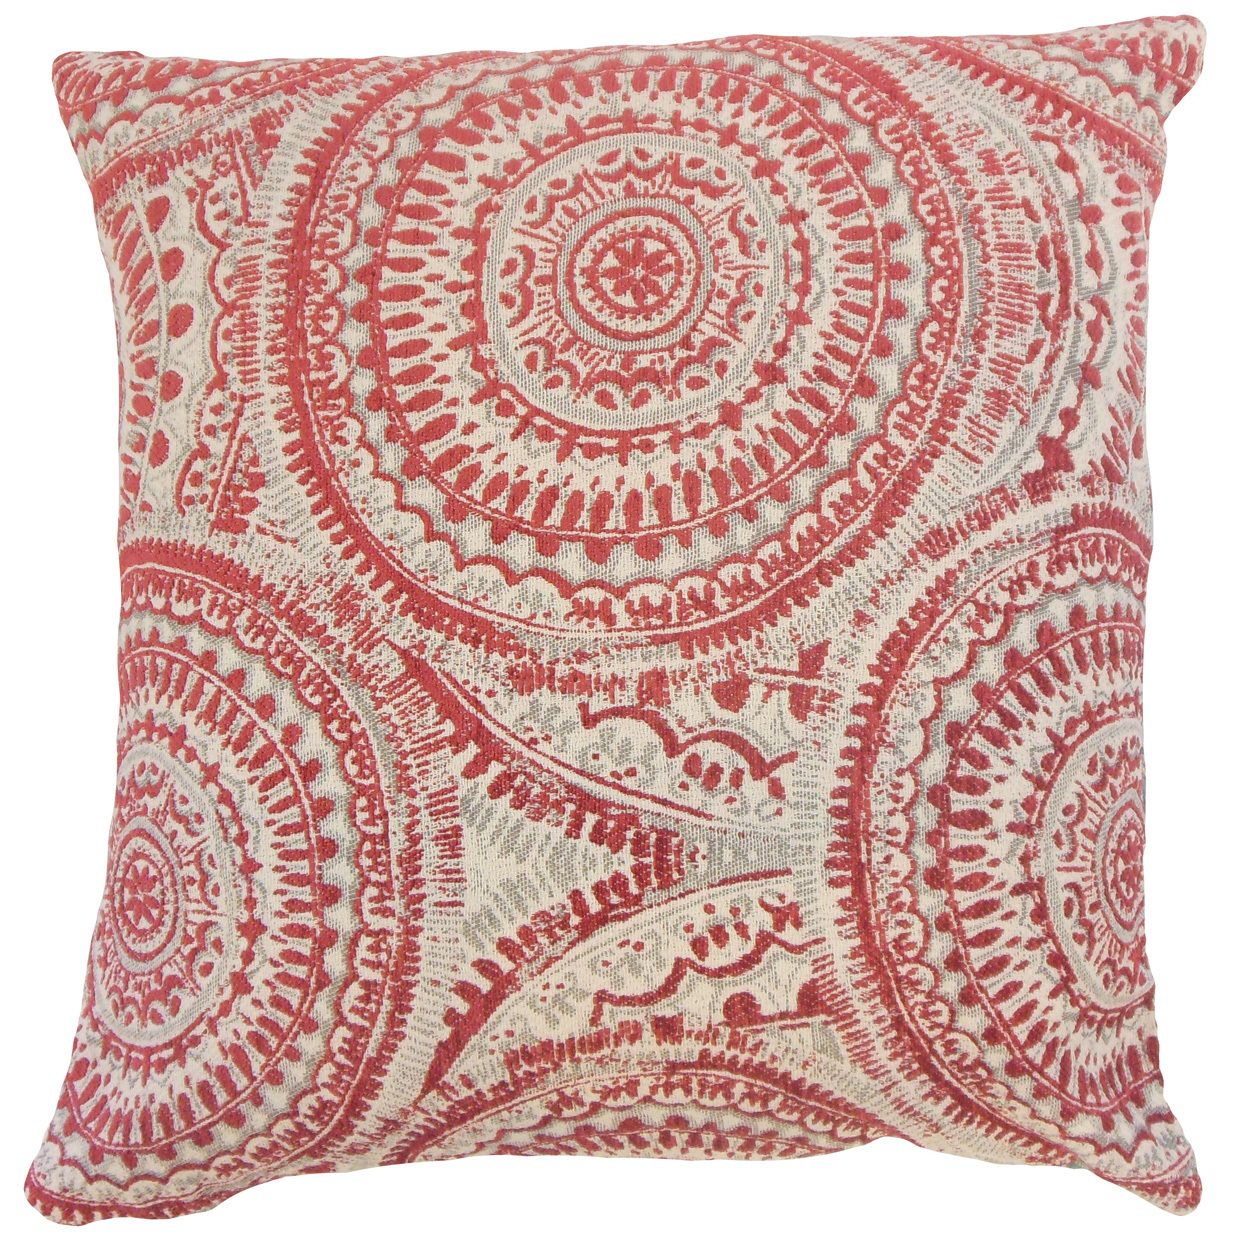 Chione Graphic Throw Pillow Cover (Size), Multi, Size 18 x 18 (Fabric)